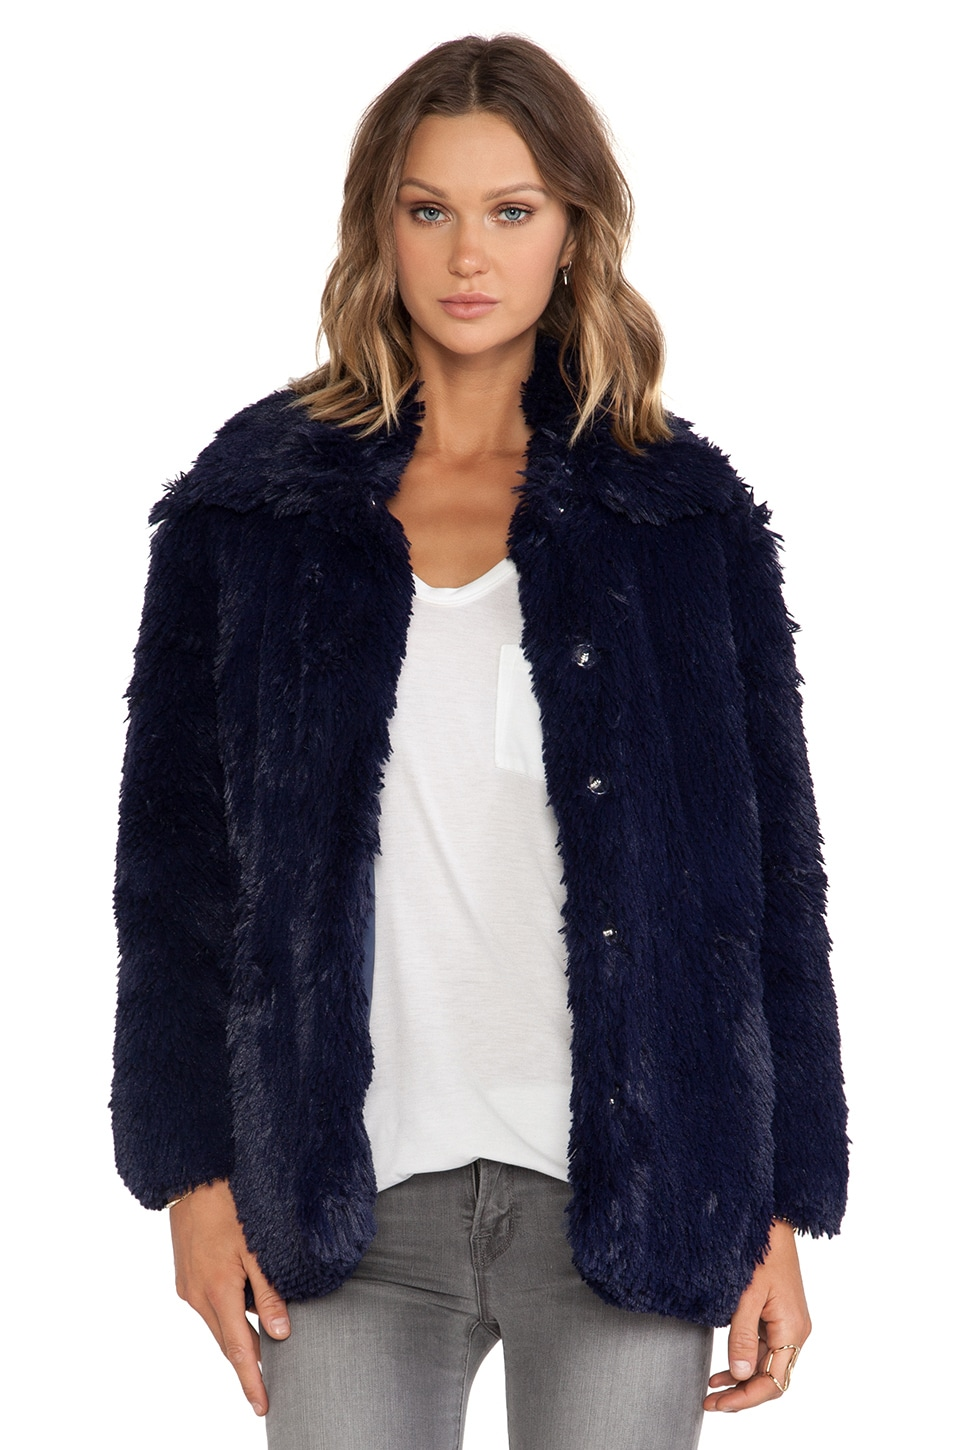 DHgate helps you get high quality discount faux fur vest at bulk prices. rusticzcountrysstylexhomedecor.tk provides faux fur vest items from China top selected Women's Fur & Faux Fur, Women's Outerwear & Coats, Women's Clothing, Apparel suppliers at wholesale prices with worldwide delivery.